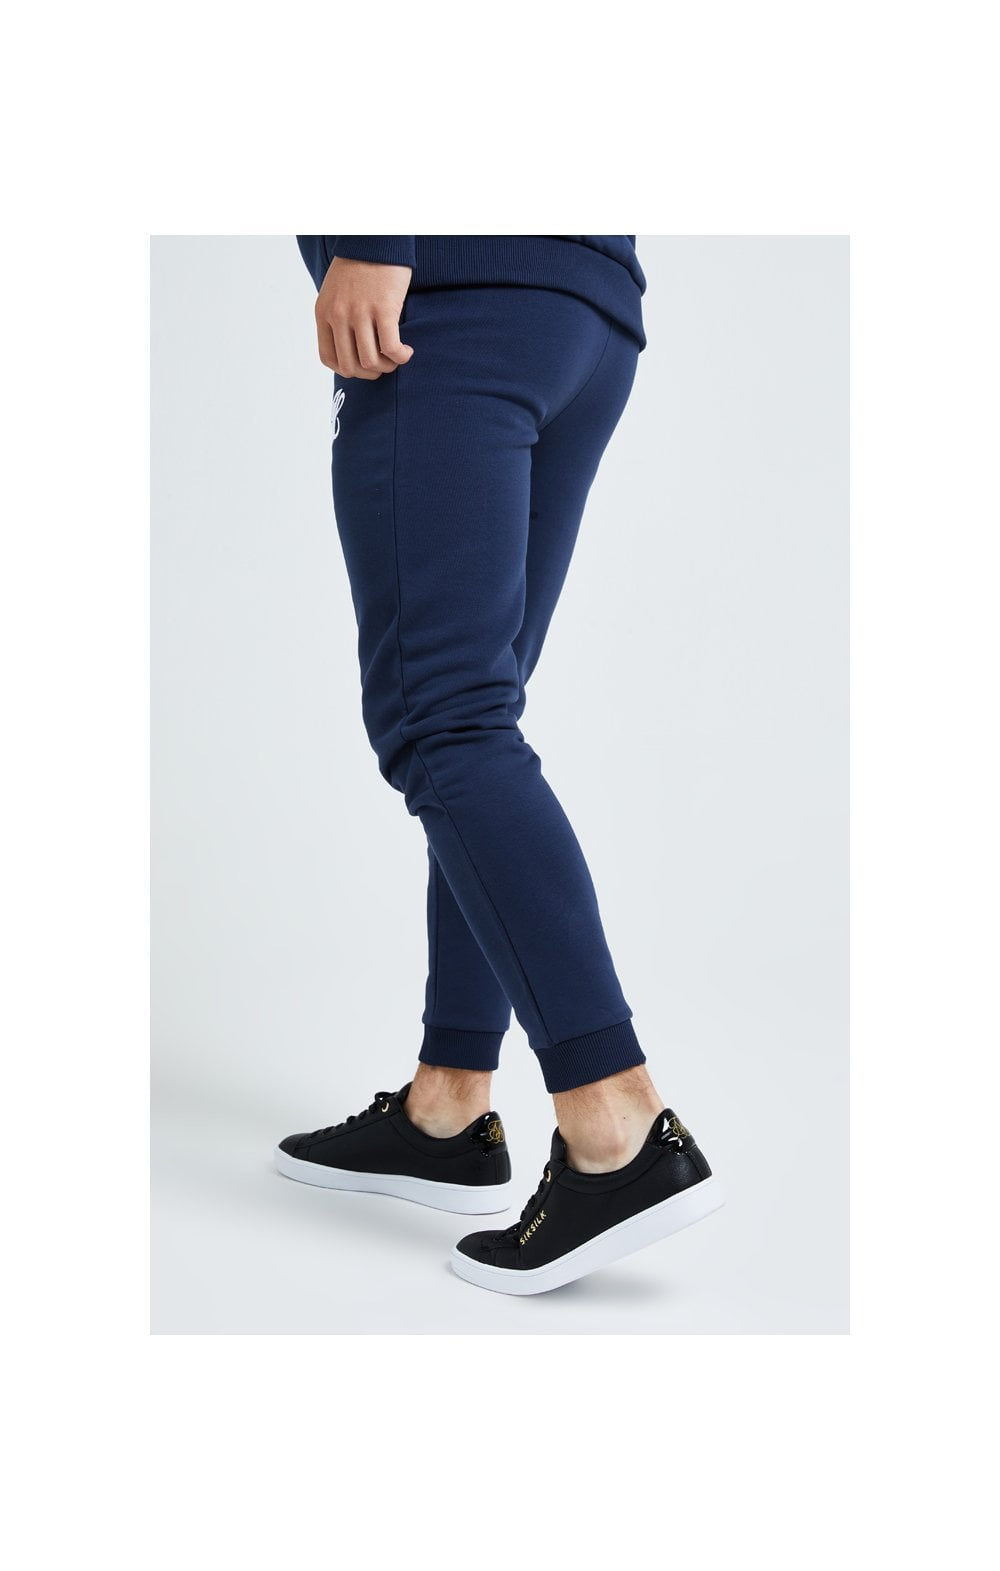 Illusive London Core Joggers – Navy (2)